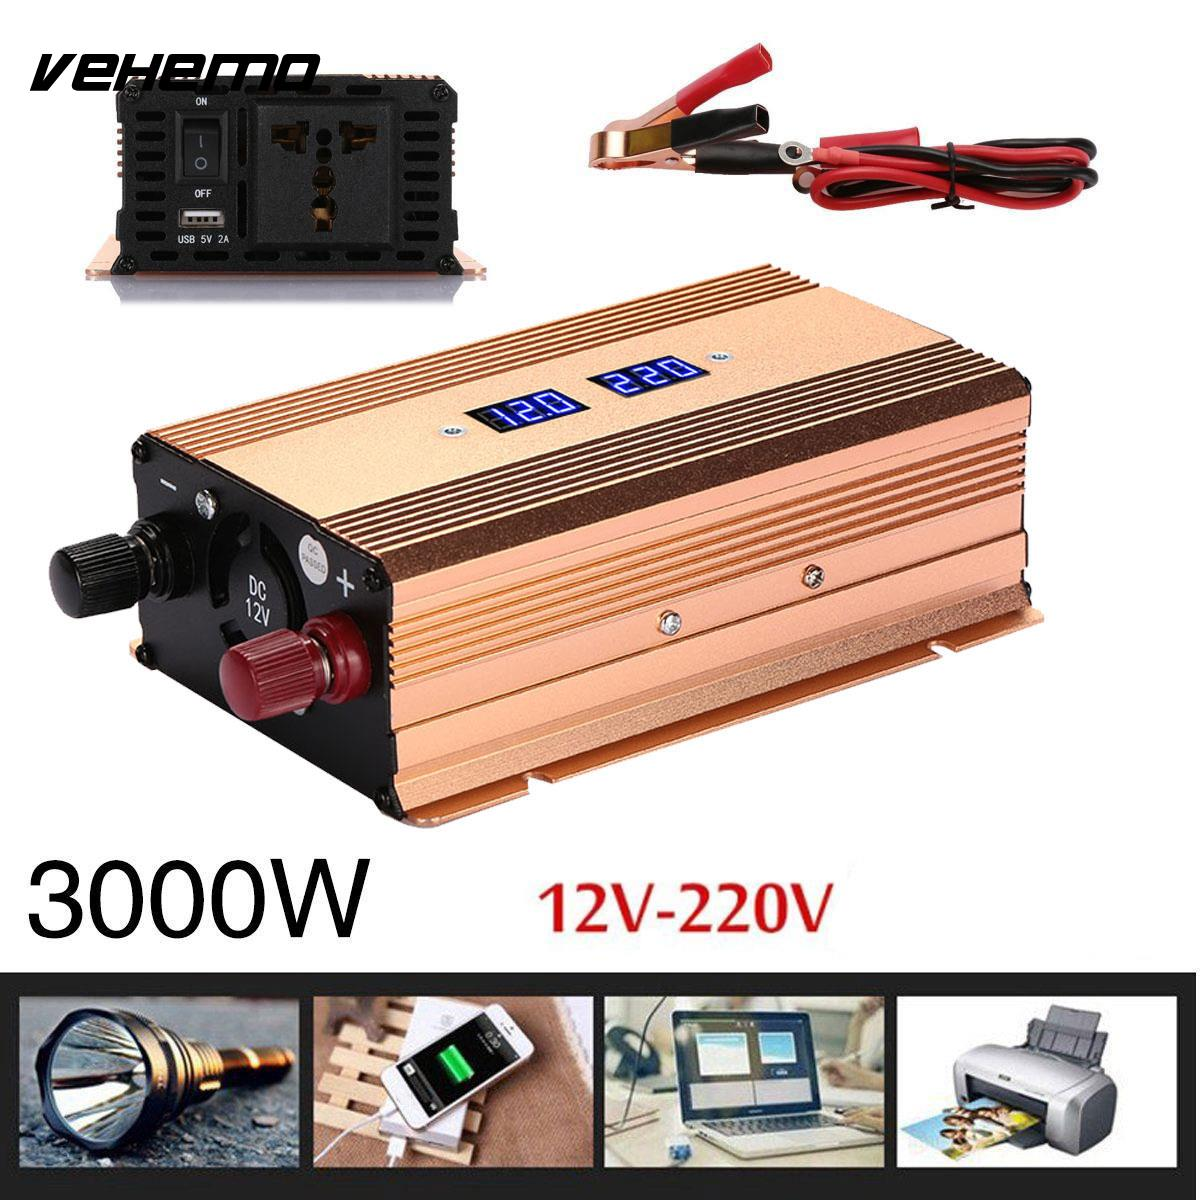 Car Inverter 3000W Solar Power Inverter DC 12V to AC 220V Truck Converter Voltage Transformer Vehicle Pure Sine Wave LCD screen 3000w car vehicle power inverter pure sine wave 12v dc to 220v ac transmitter transformer power supply inverter